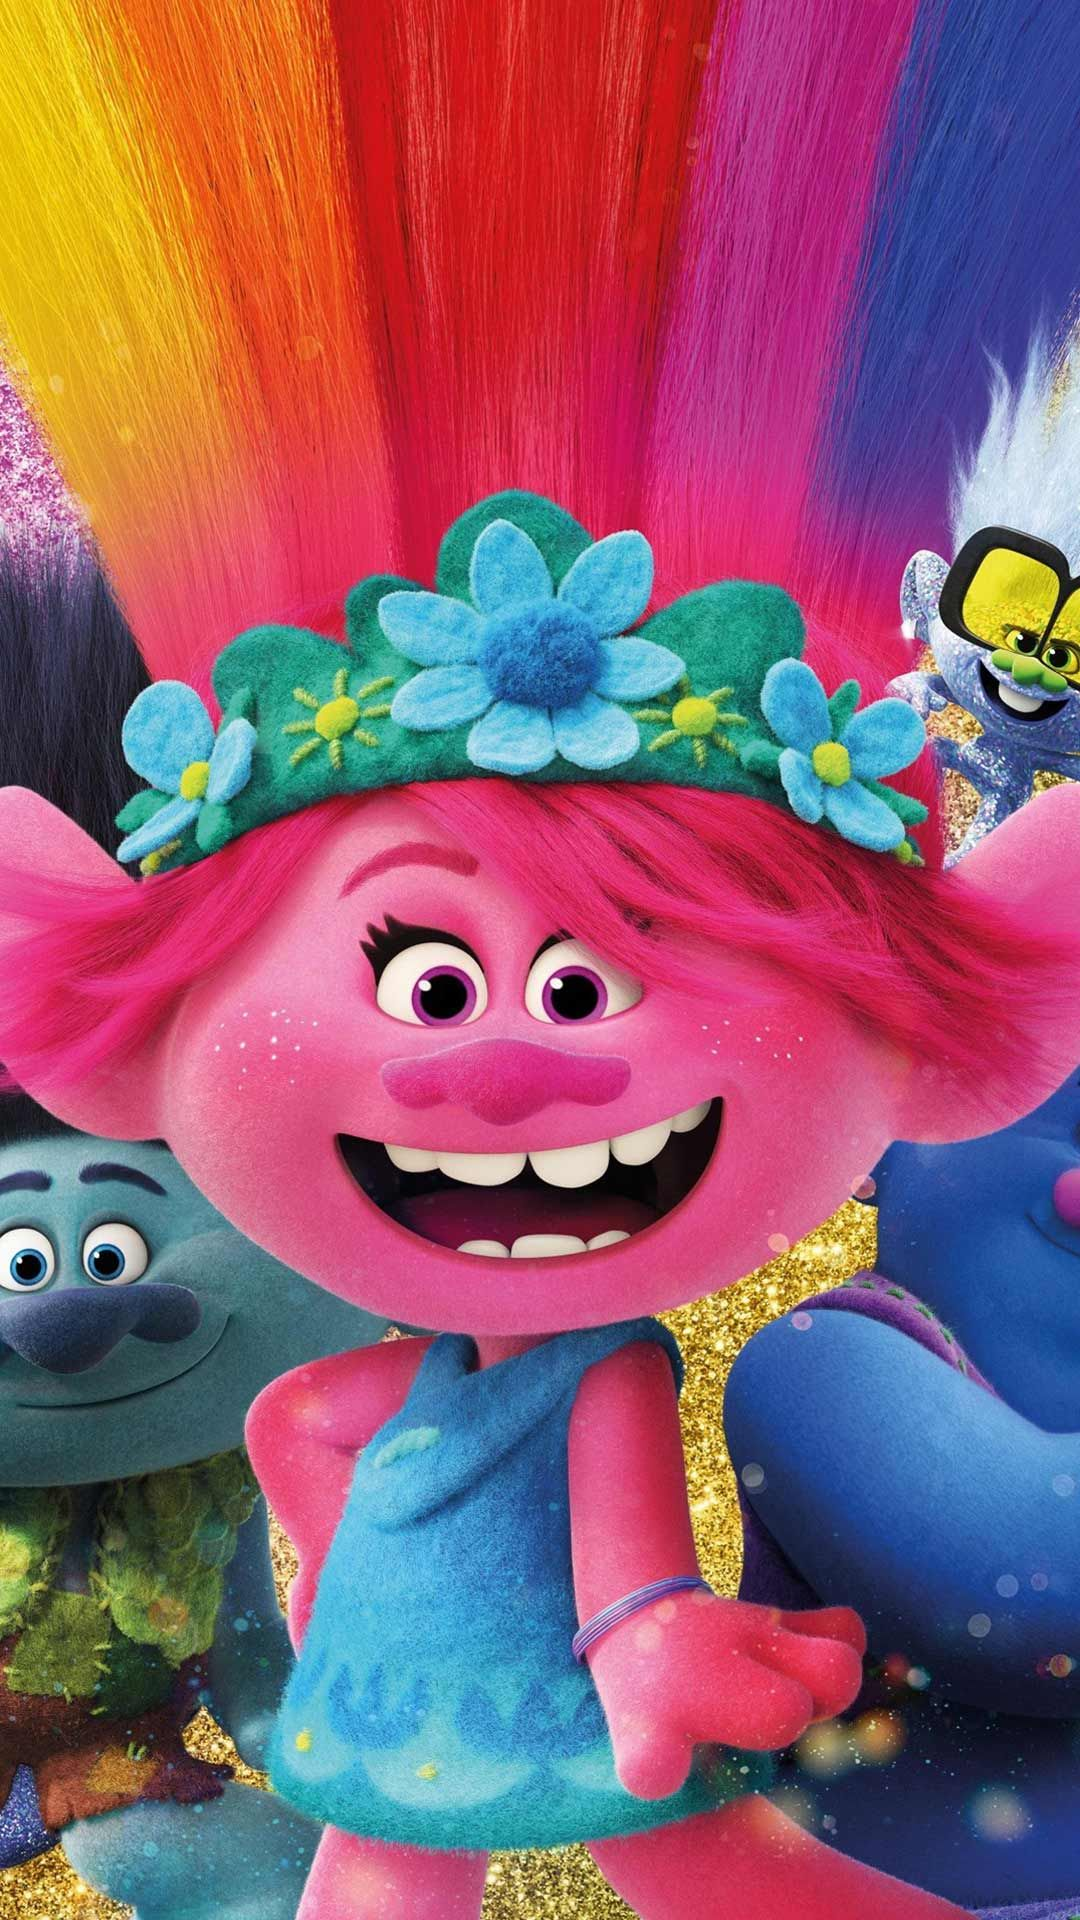 Trolls World Tour Wallpaper Hd Phone Backgrounds Movie Poster Characters For Iphone Android Screen Disney Phone Wallpaper Movie Wallpapers Disney Wallpaper